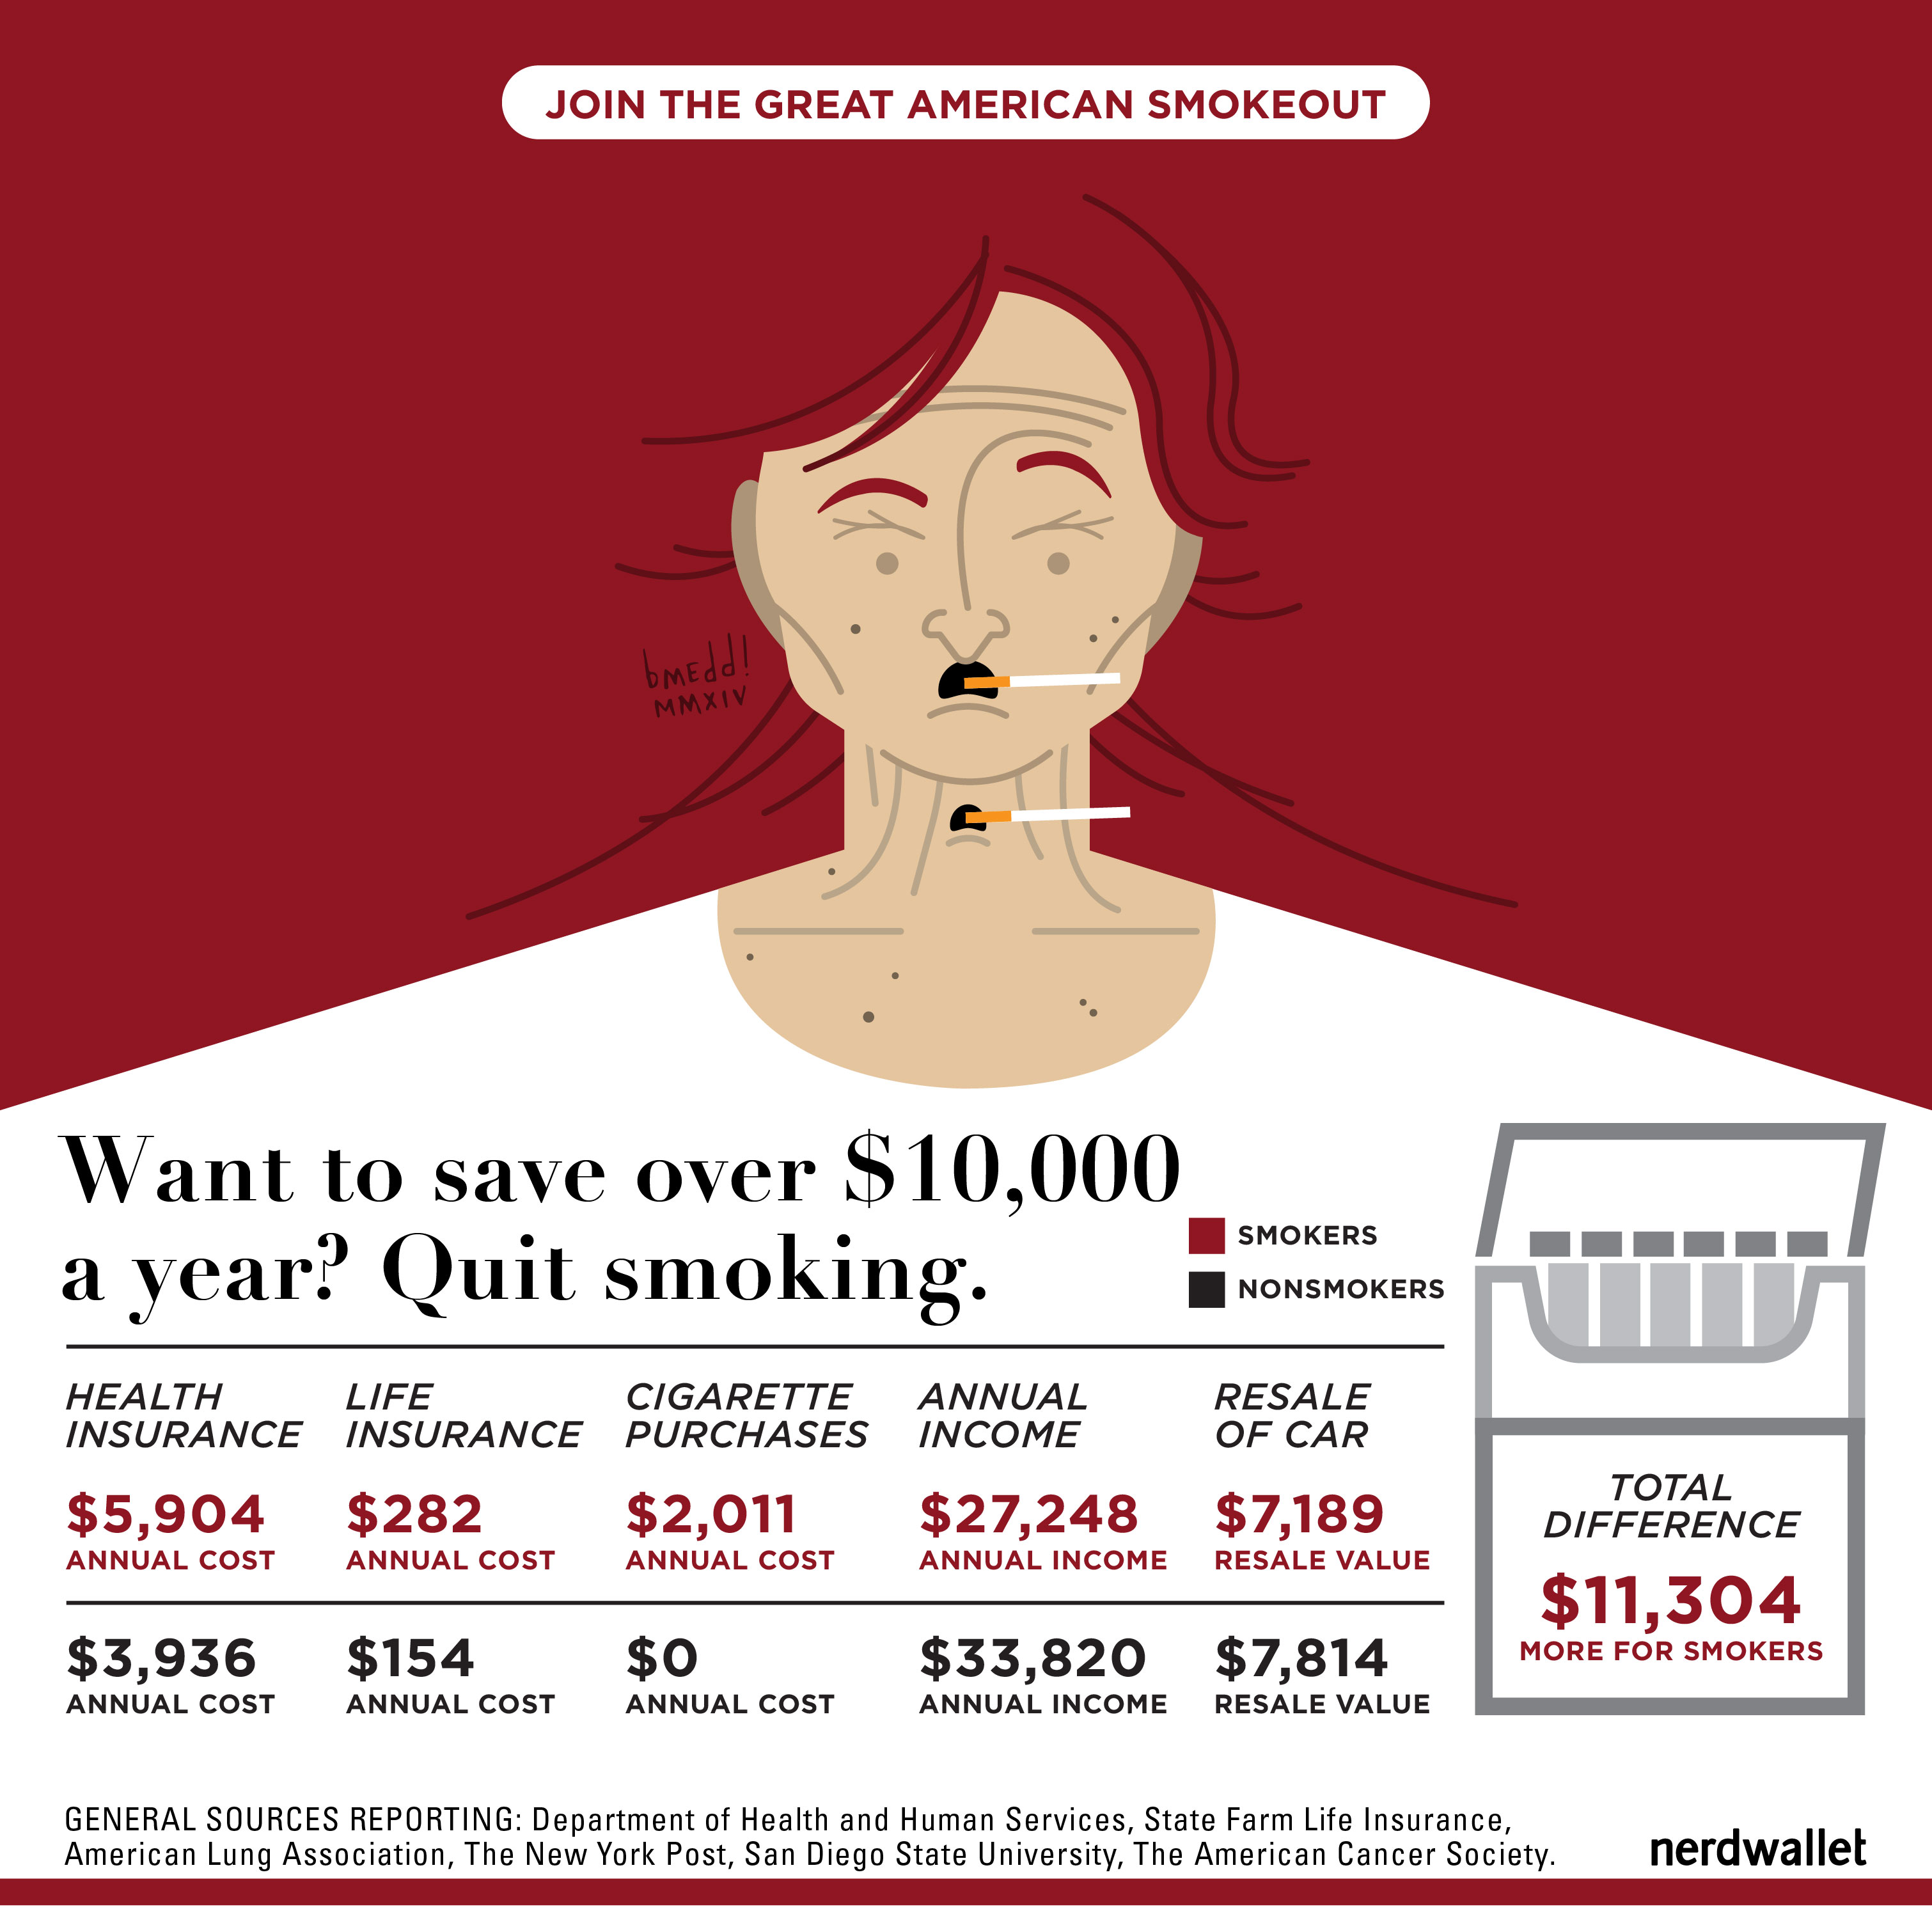 Can I Afford to Quit Smoking